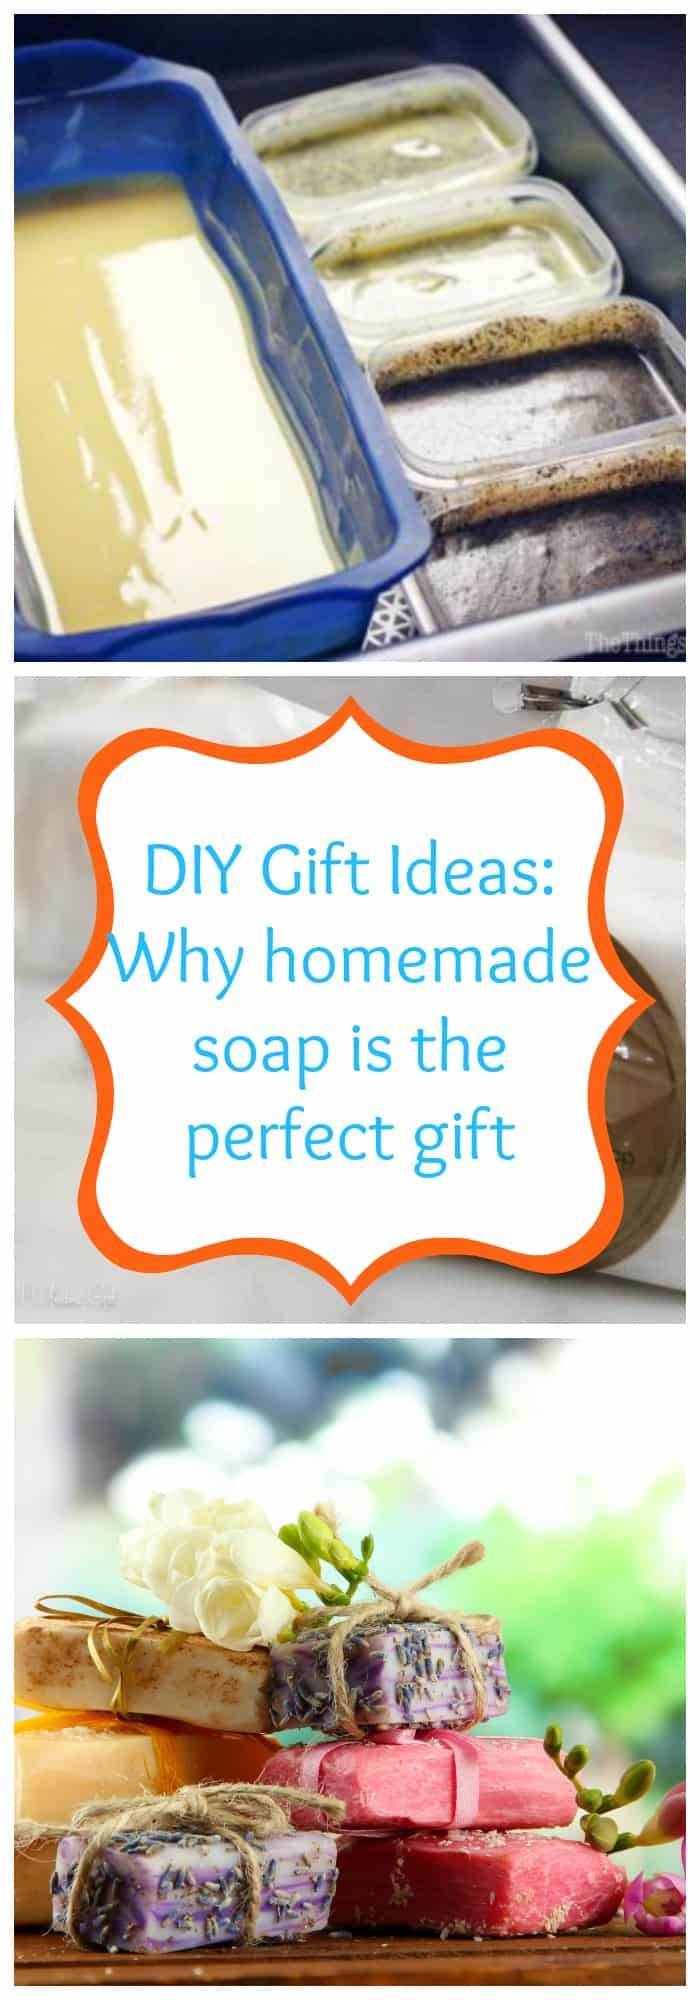 DIY--DIY Gift Ideas: Why Homemade Soap is the Perfect Gift--The Organized Mom